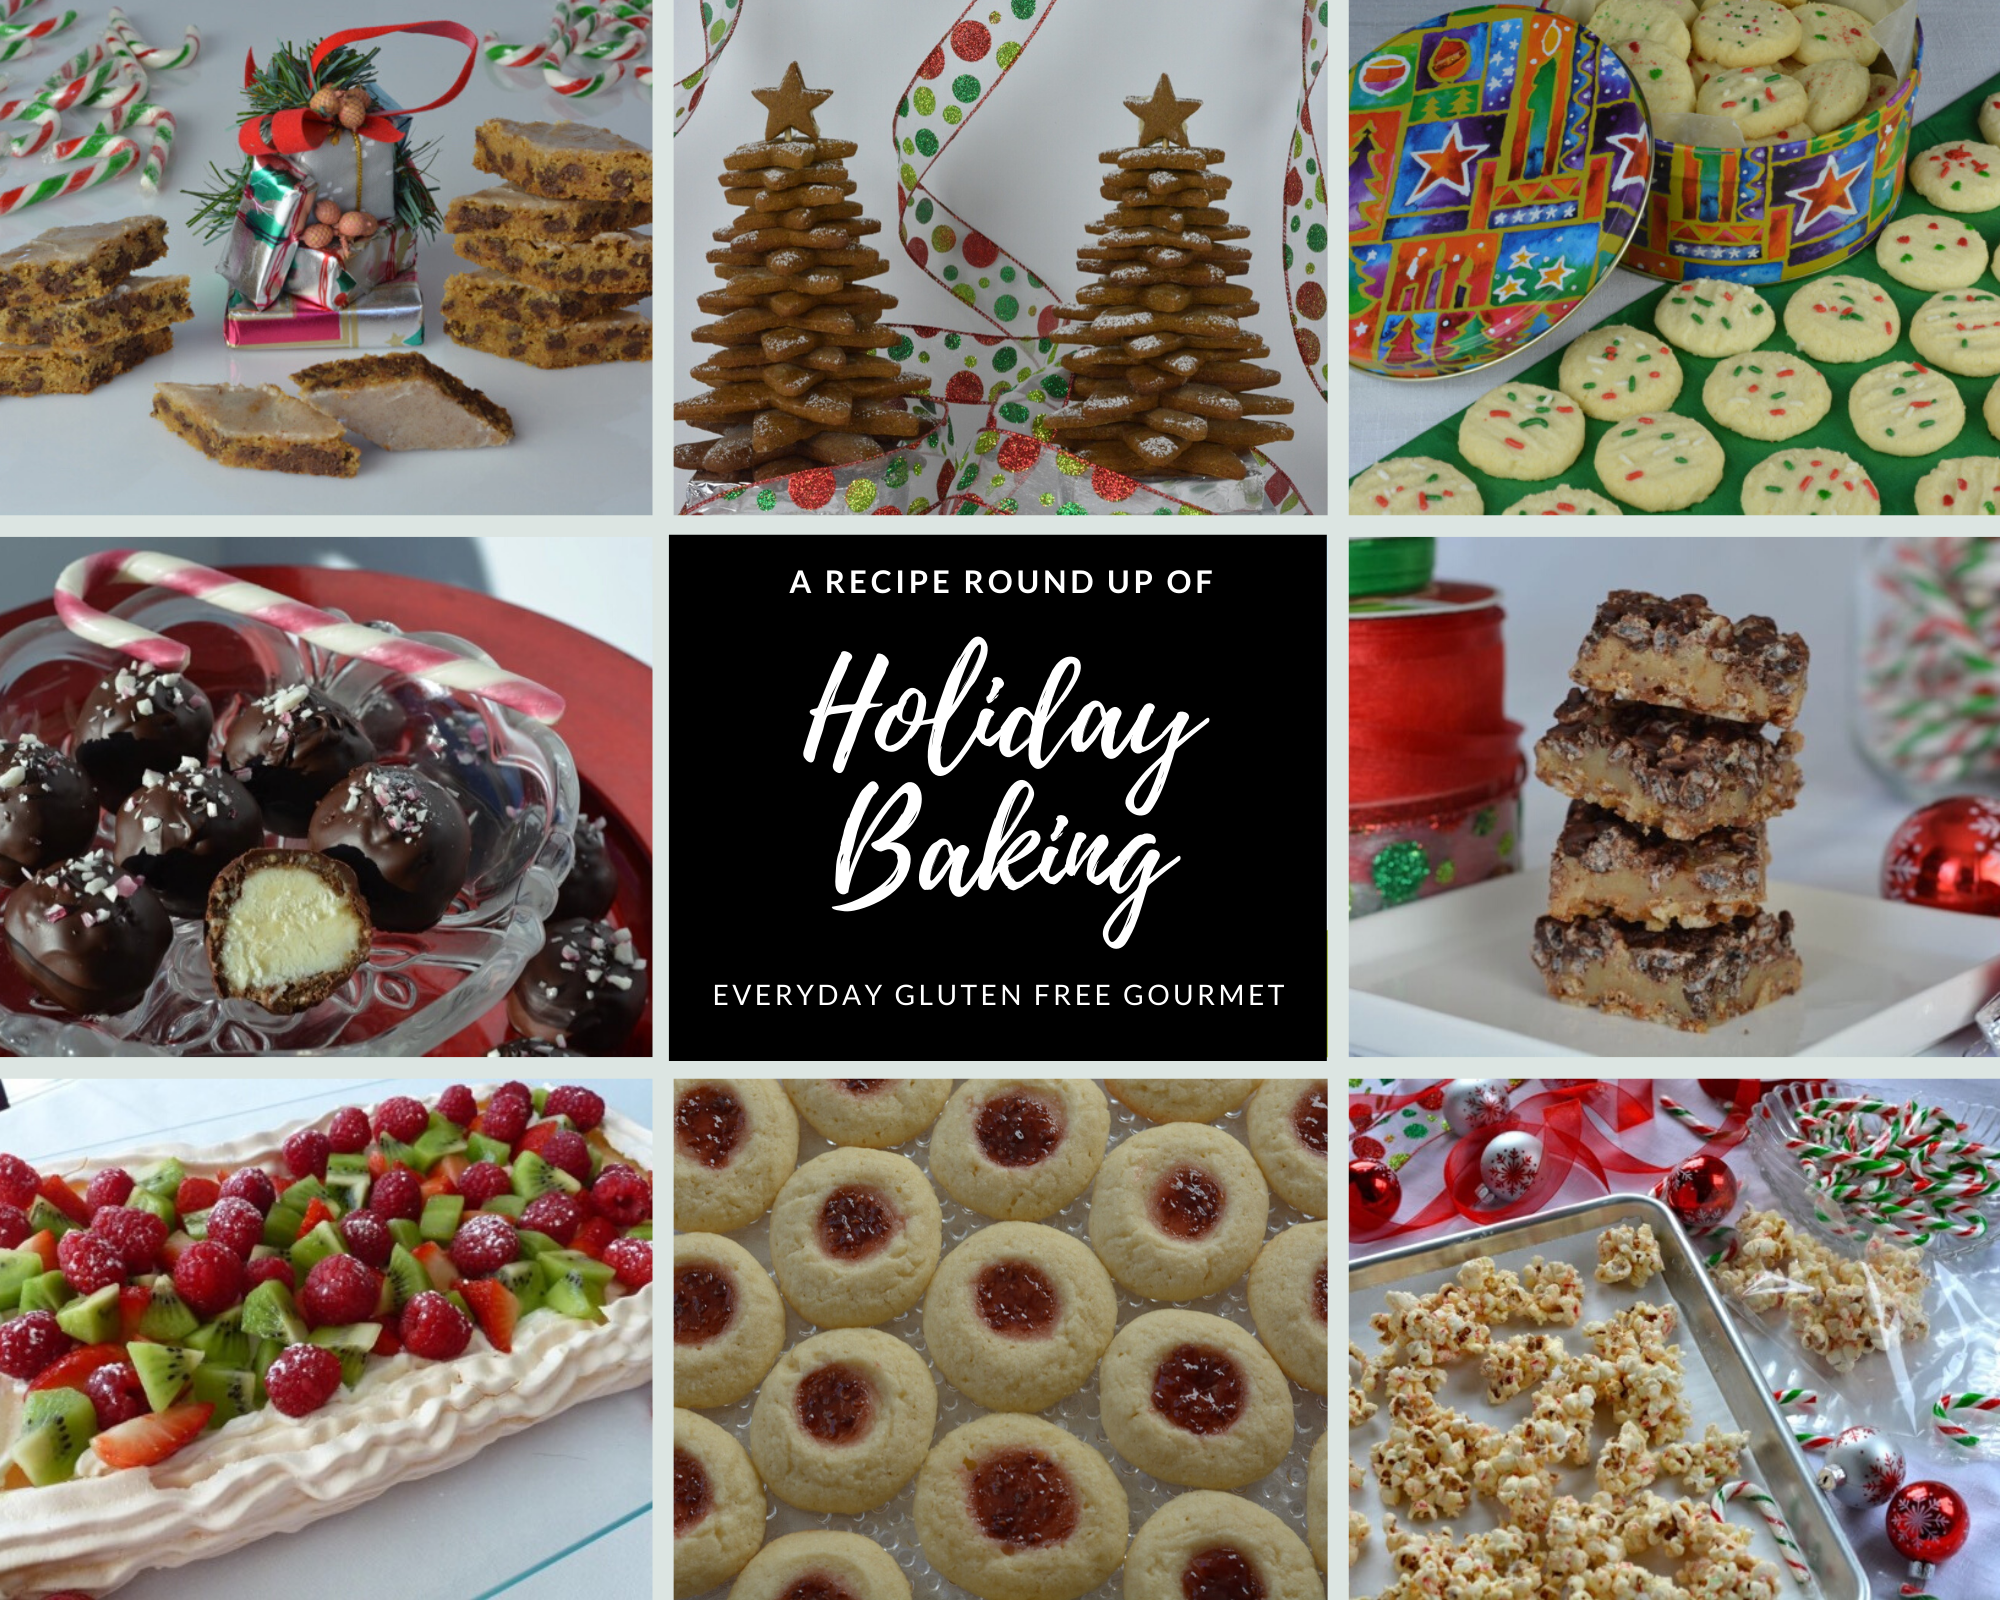 Recipe Round Up – Holiday Baking